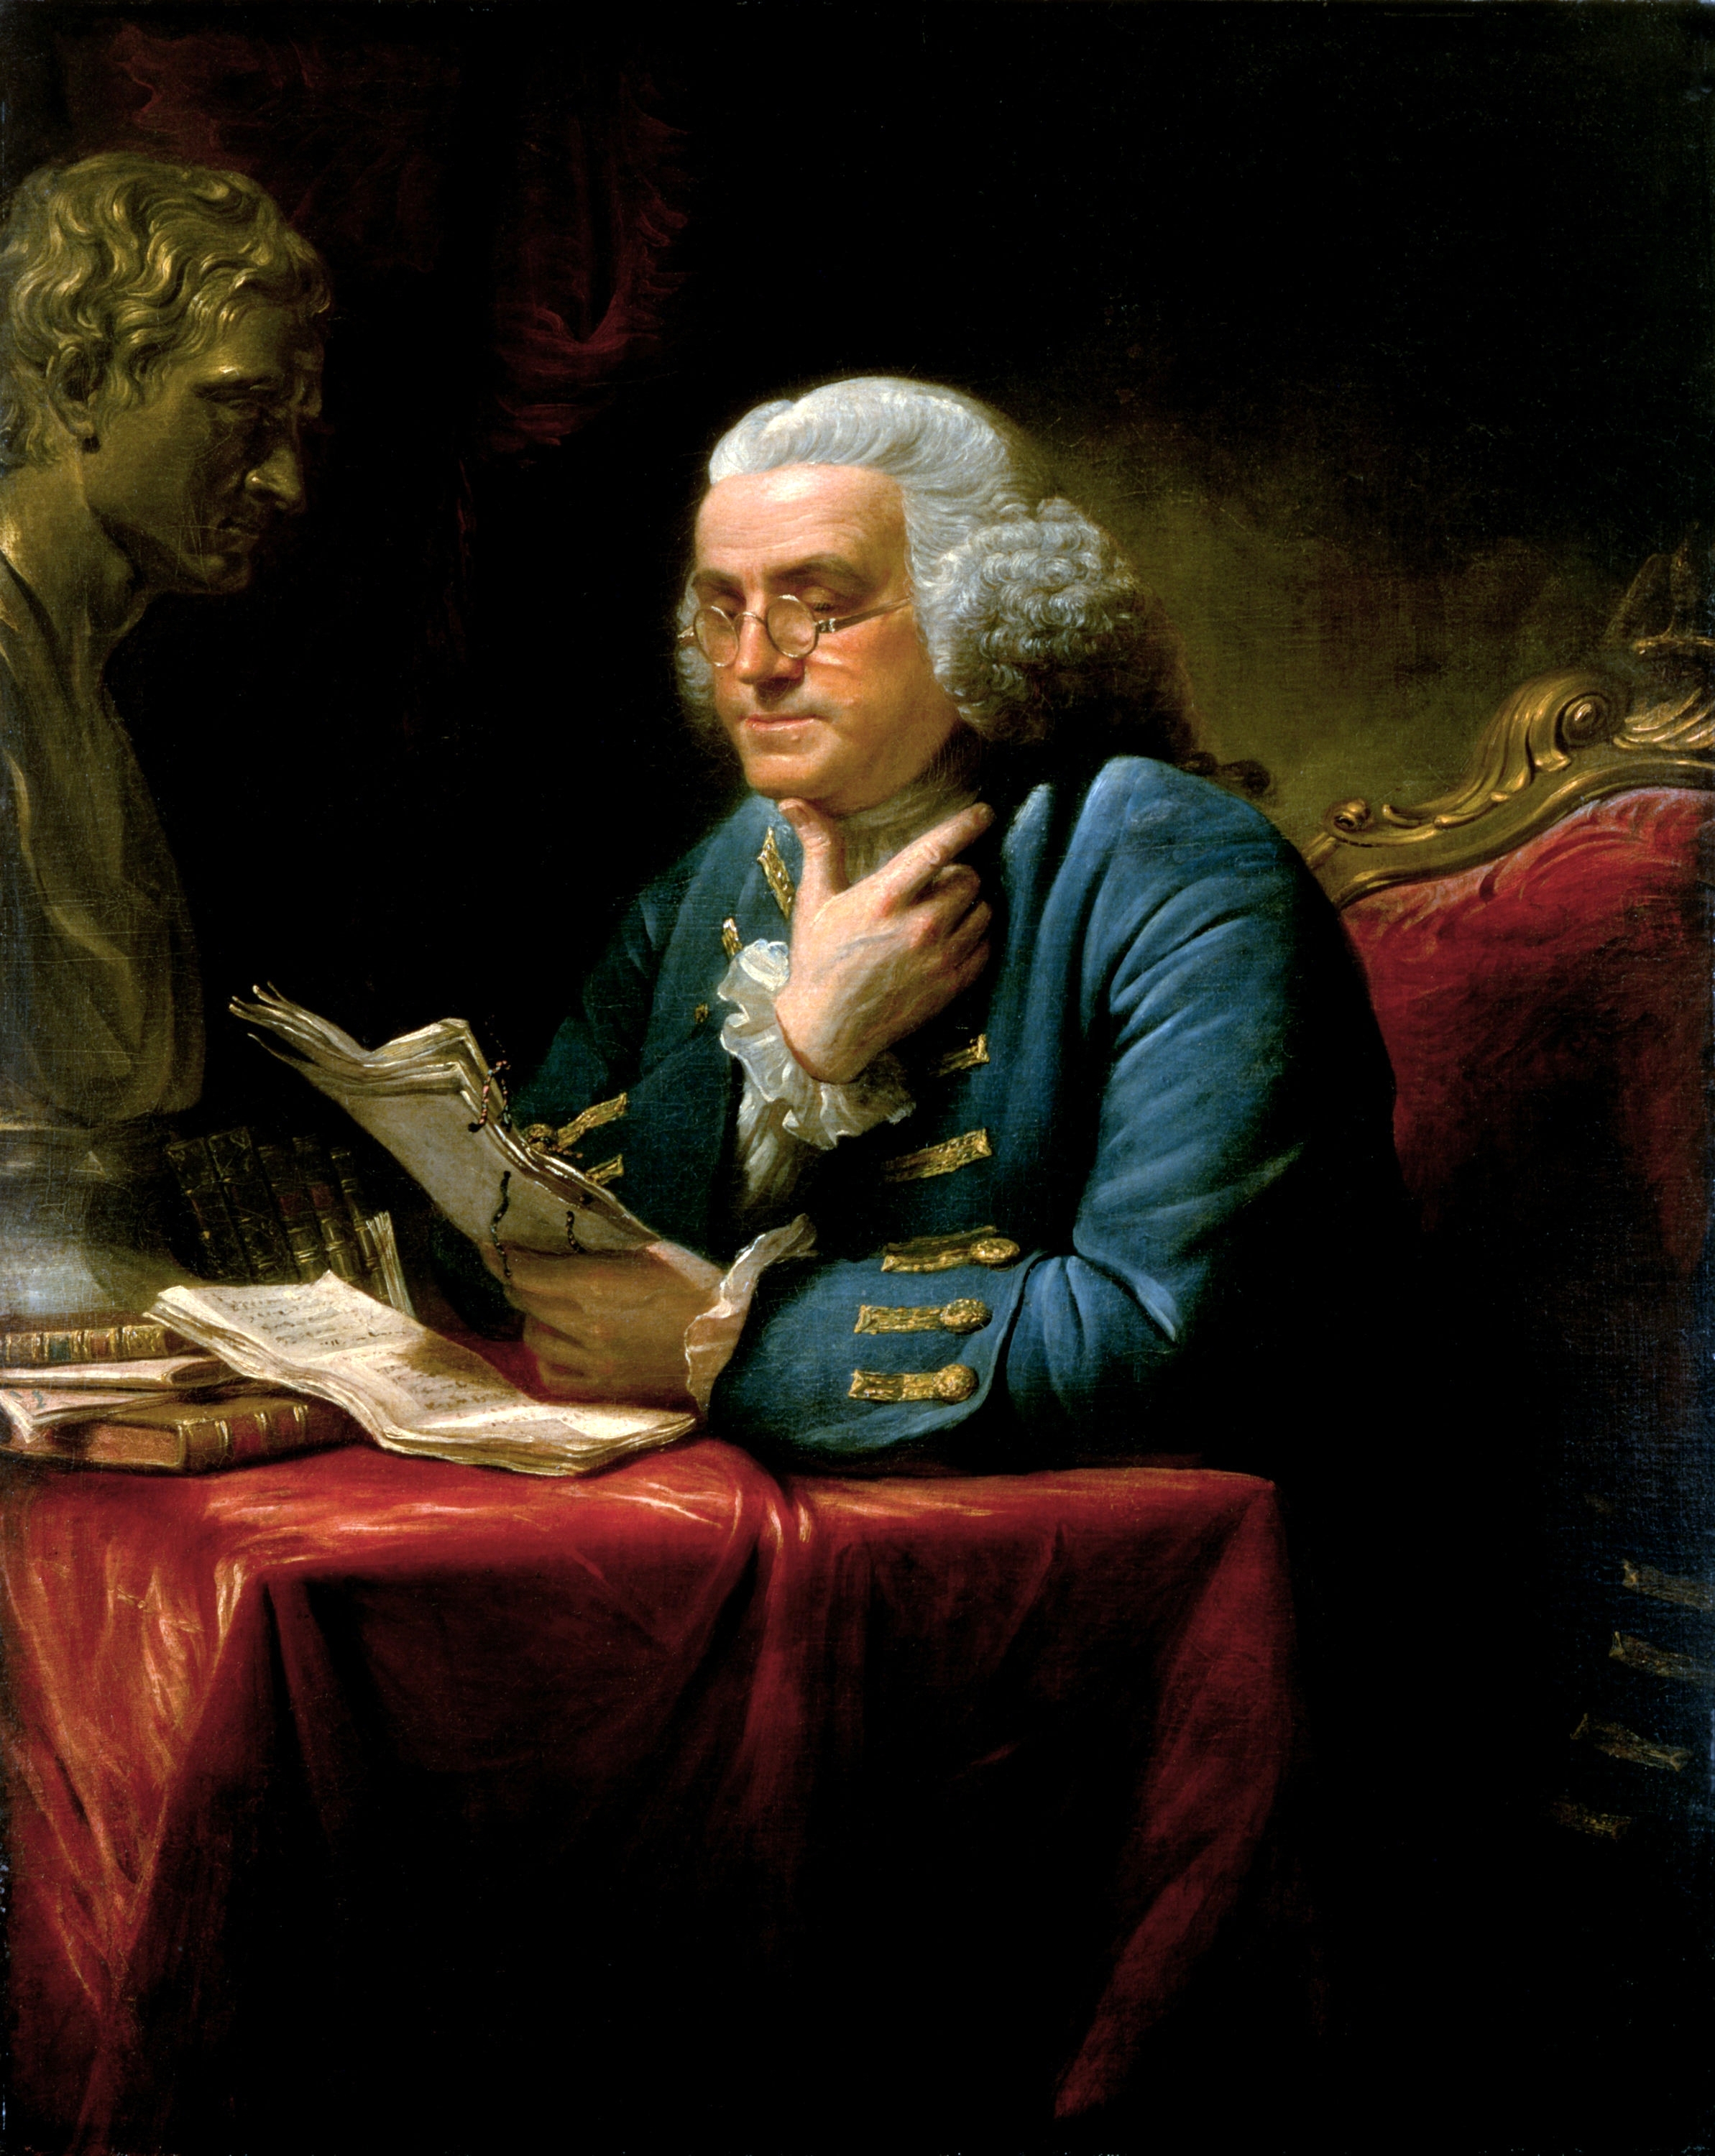 benjamin franklin franklin in london 1767 wearing a blue suit elaborate gold braid and buttons a far cry from the simple dress he affected at the french court in